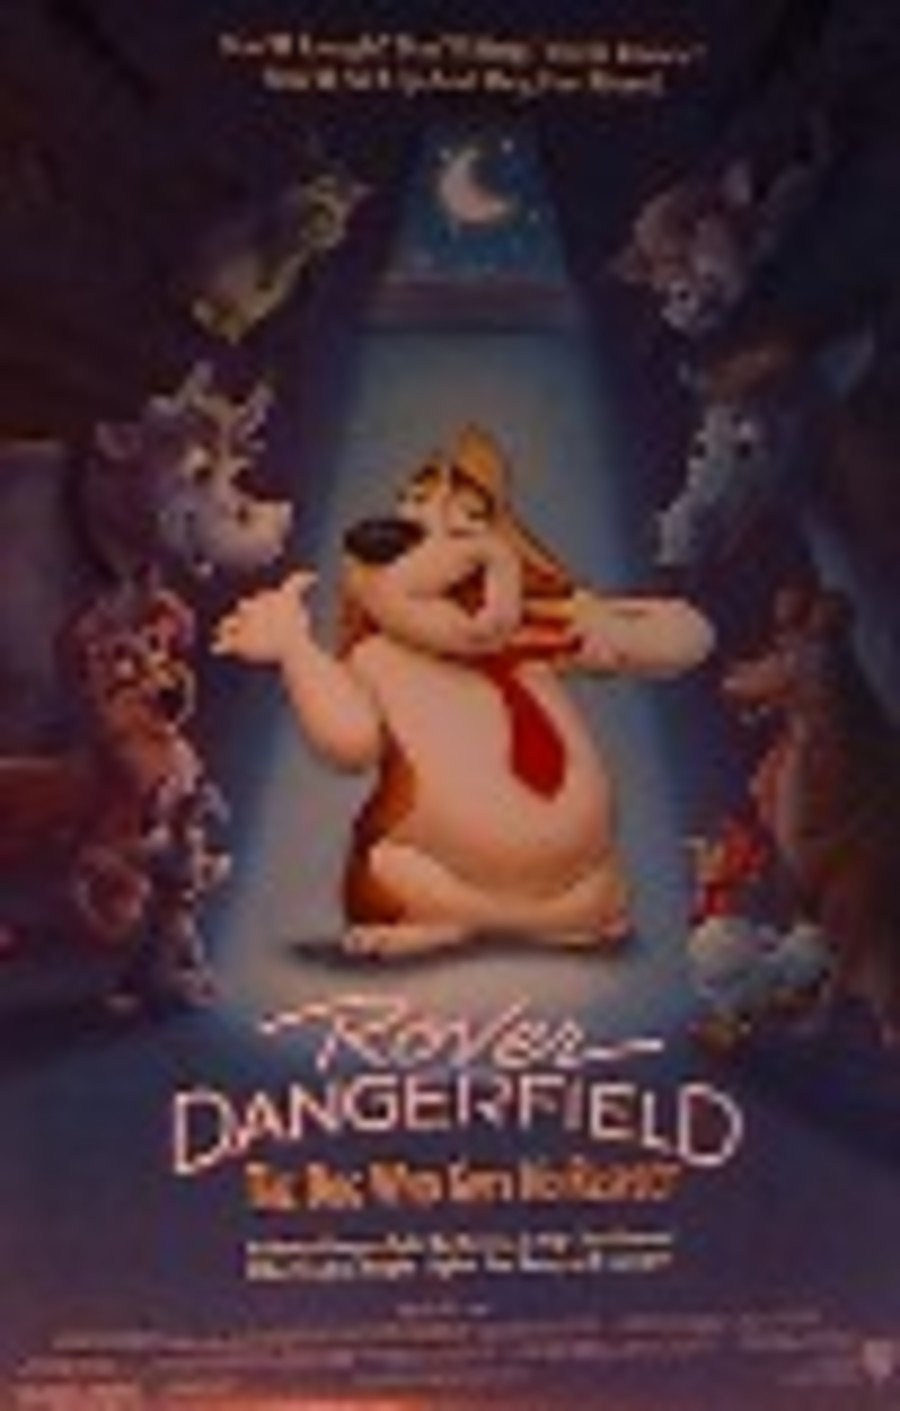 Rover Dangerfield Movie Poster		SKU: ge-2558